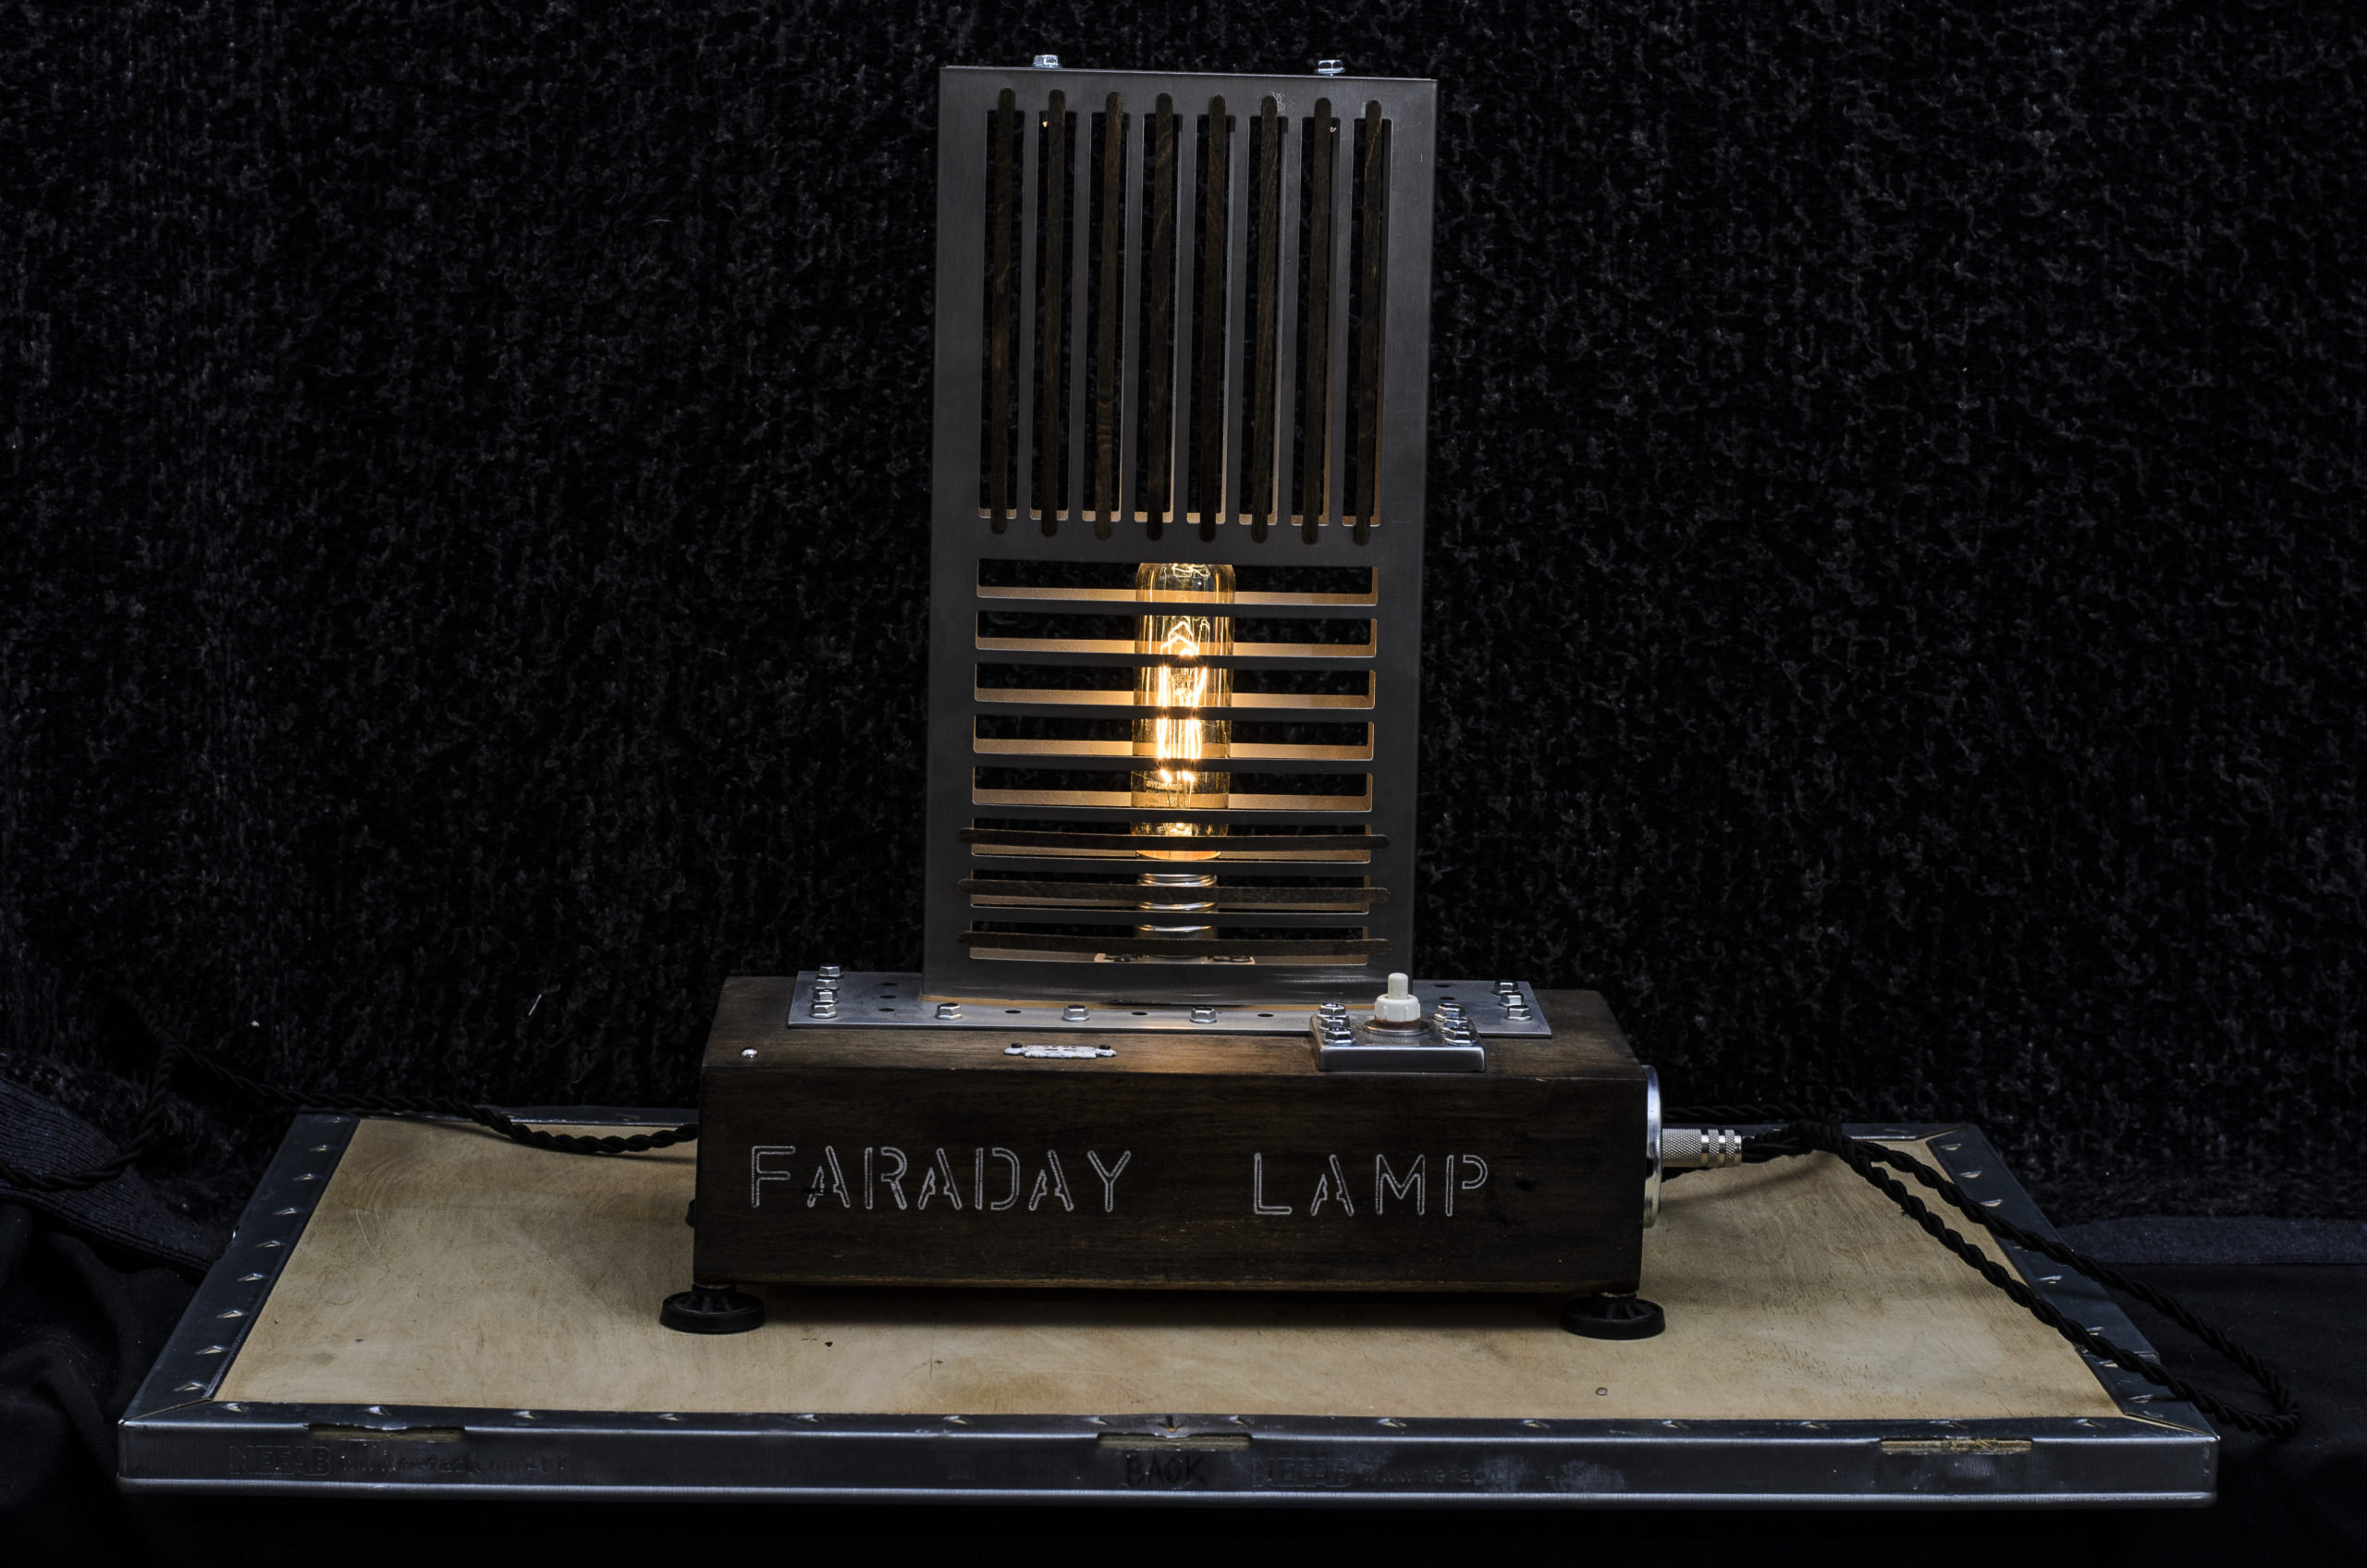 FARADAY LAMP ART BY CHEM 3